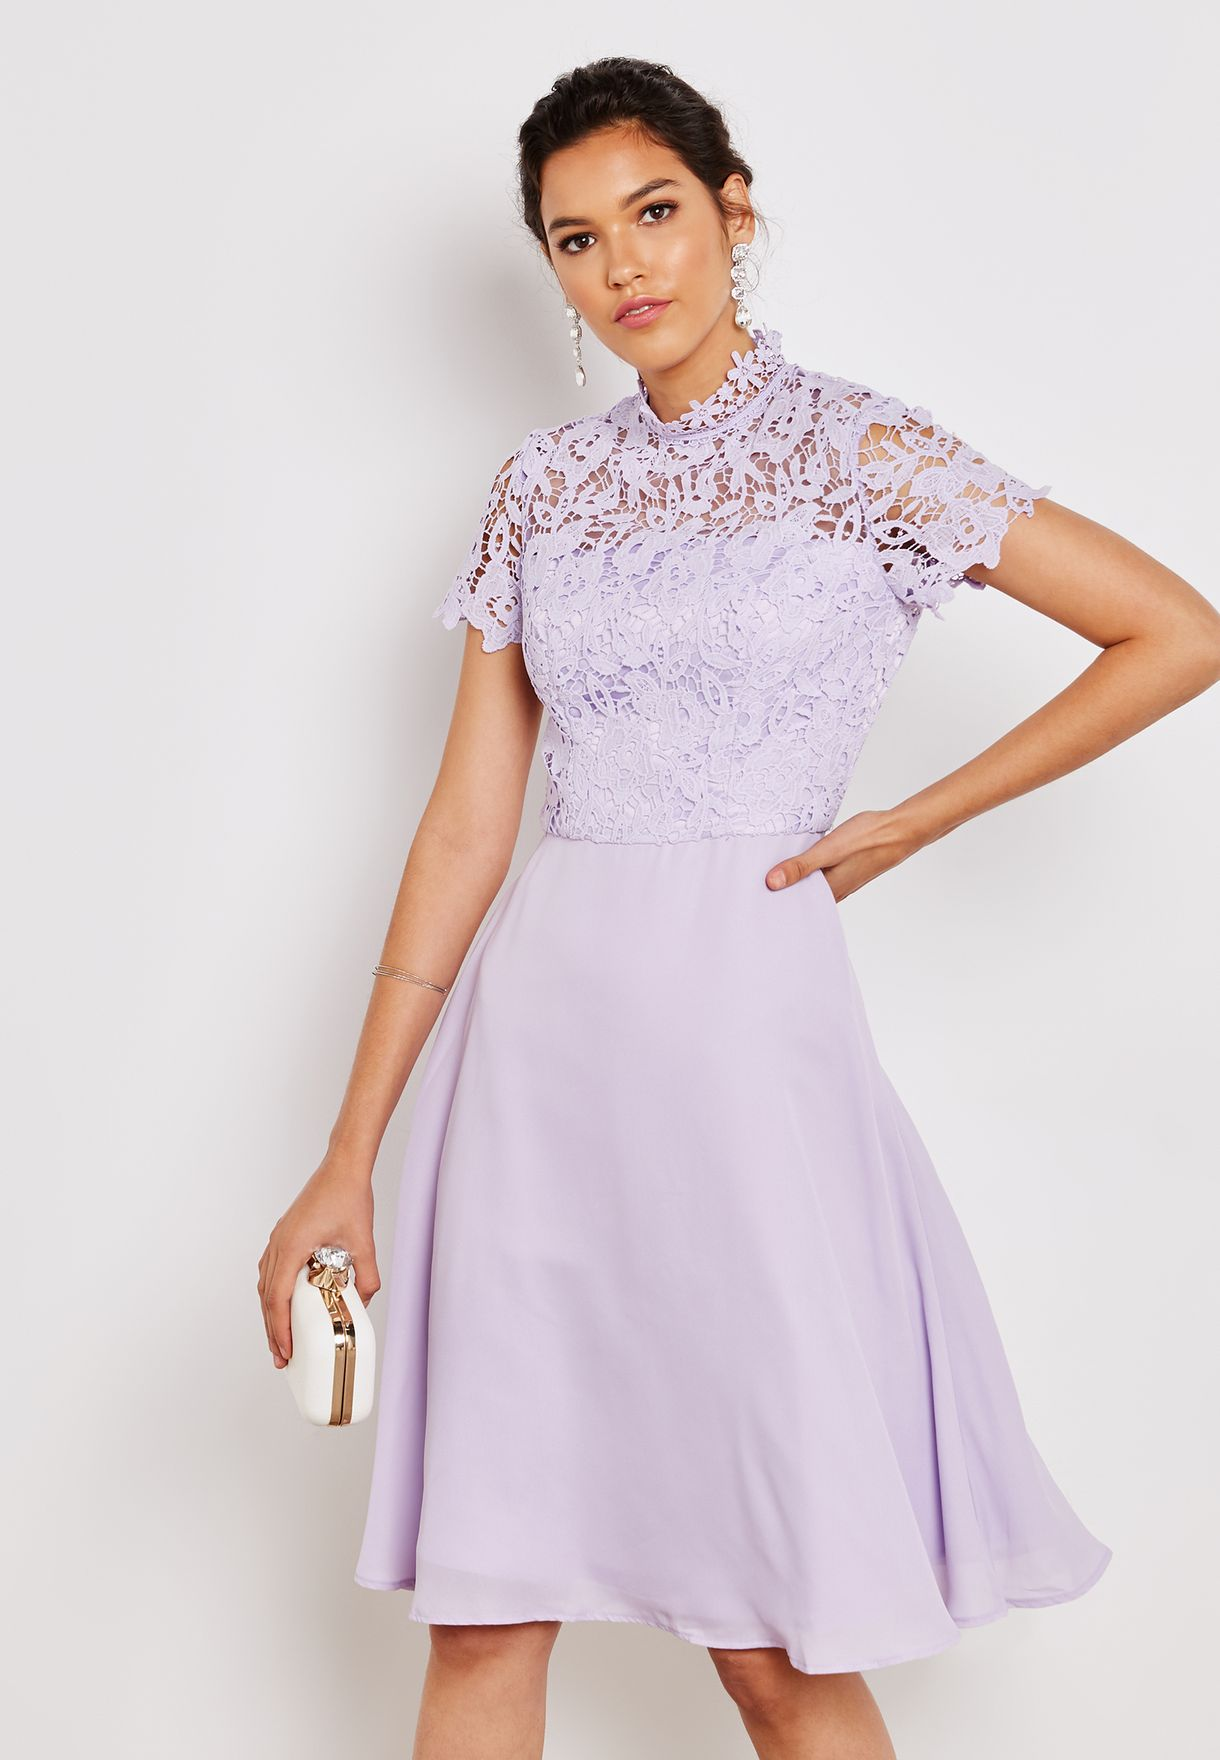 0696dc37ee Shop Chi Chi purple High Neck Lace Detail Dress 52045MILI for Women in  Saudi - CH305AT54JBL